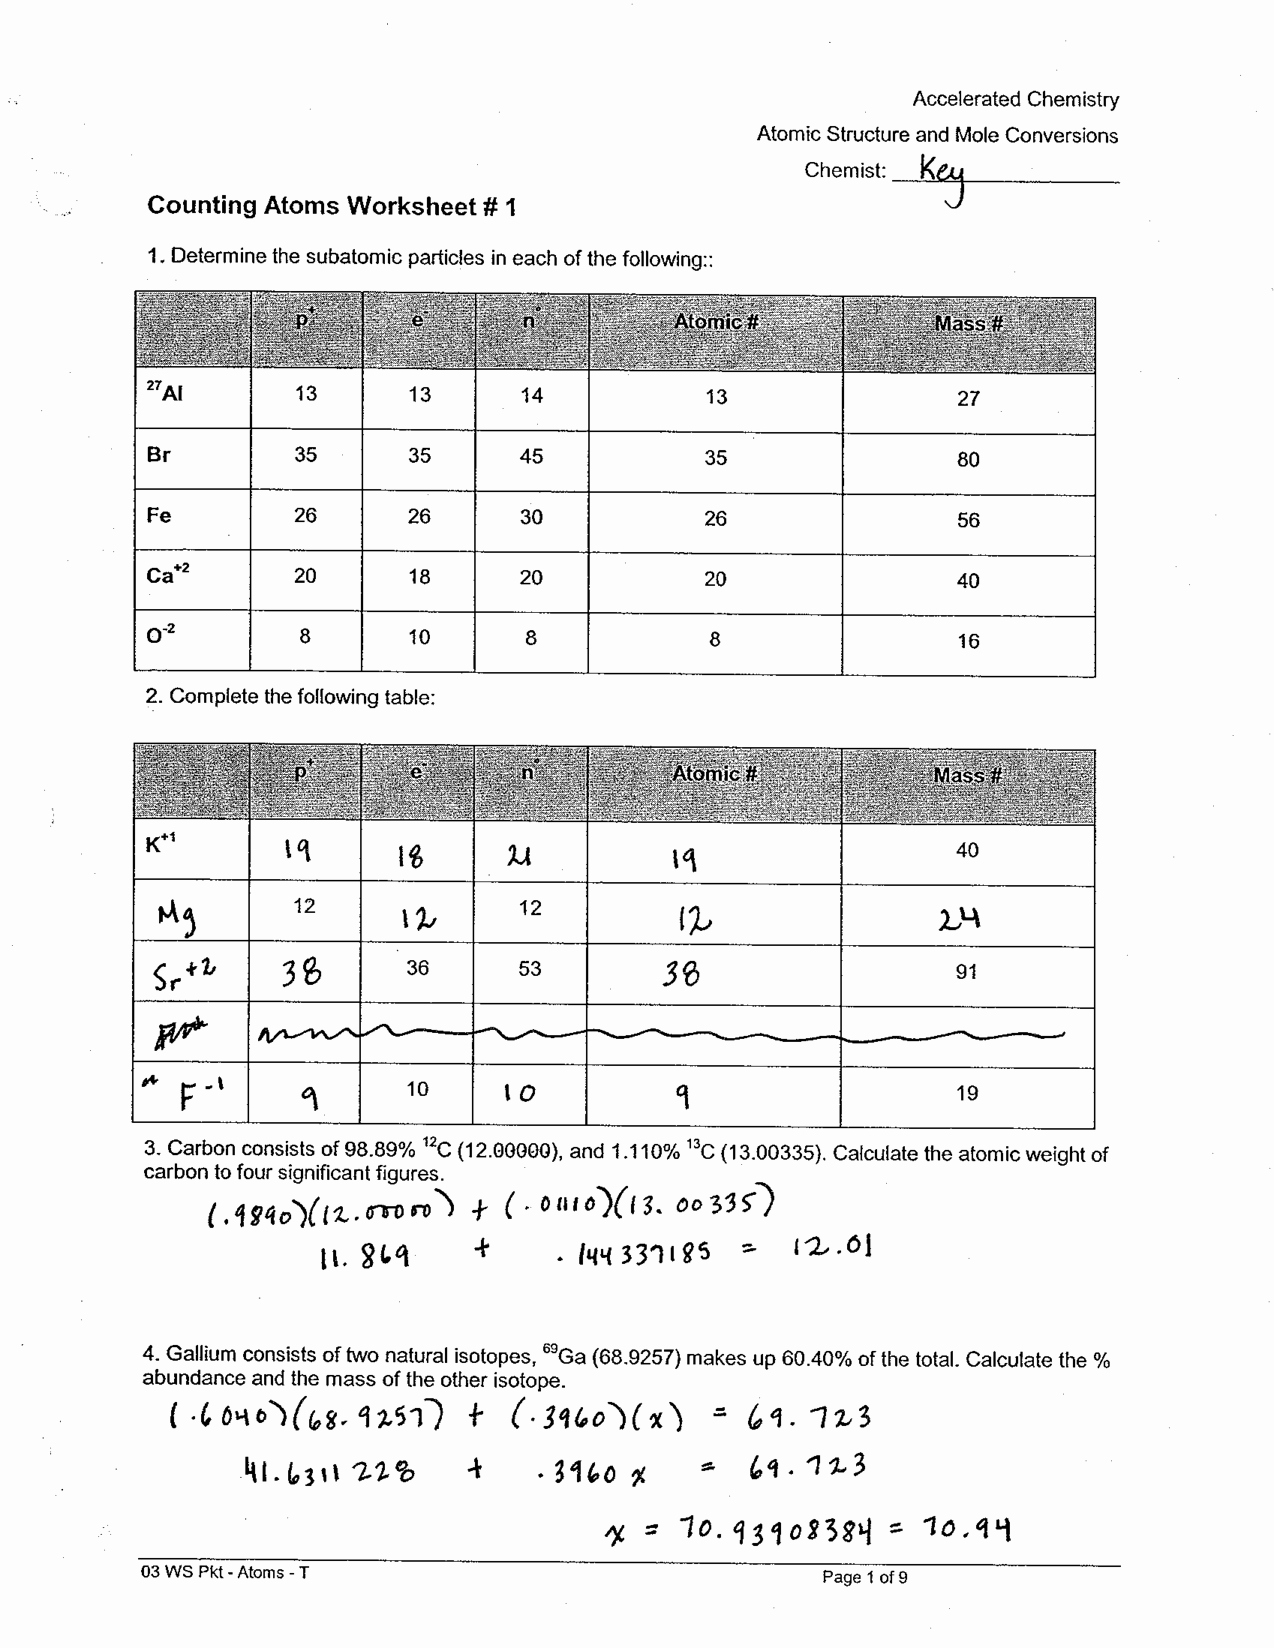 Atomic Structure Worksheet Pdf New 17 Best Of Counting atoms Worksheet Answers